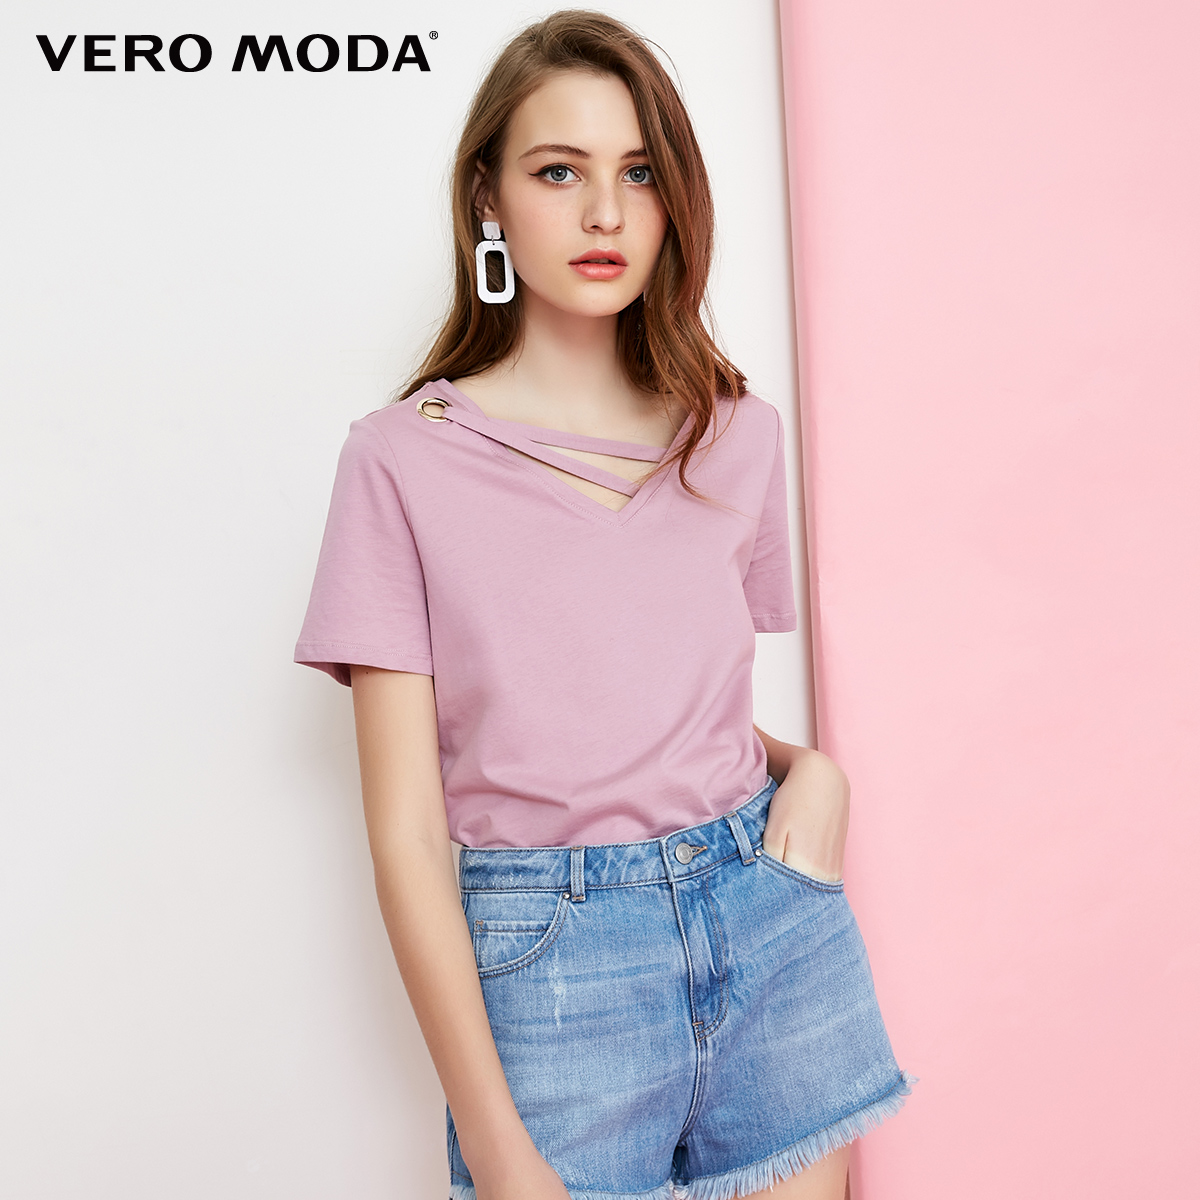 Vero Moda 100% Cotton Pure Color Collar Decorative Band Casual Short Sleeve T-shirt | 318101523